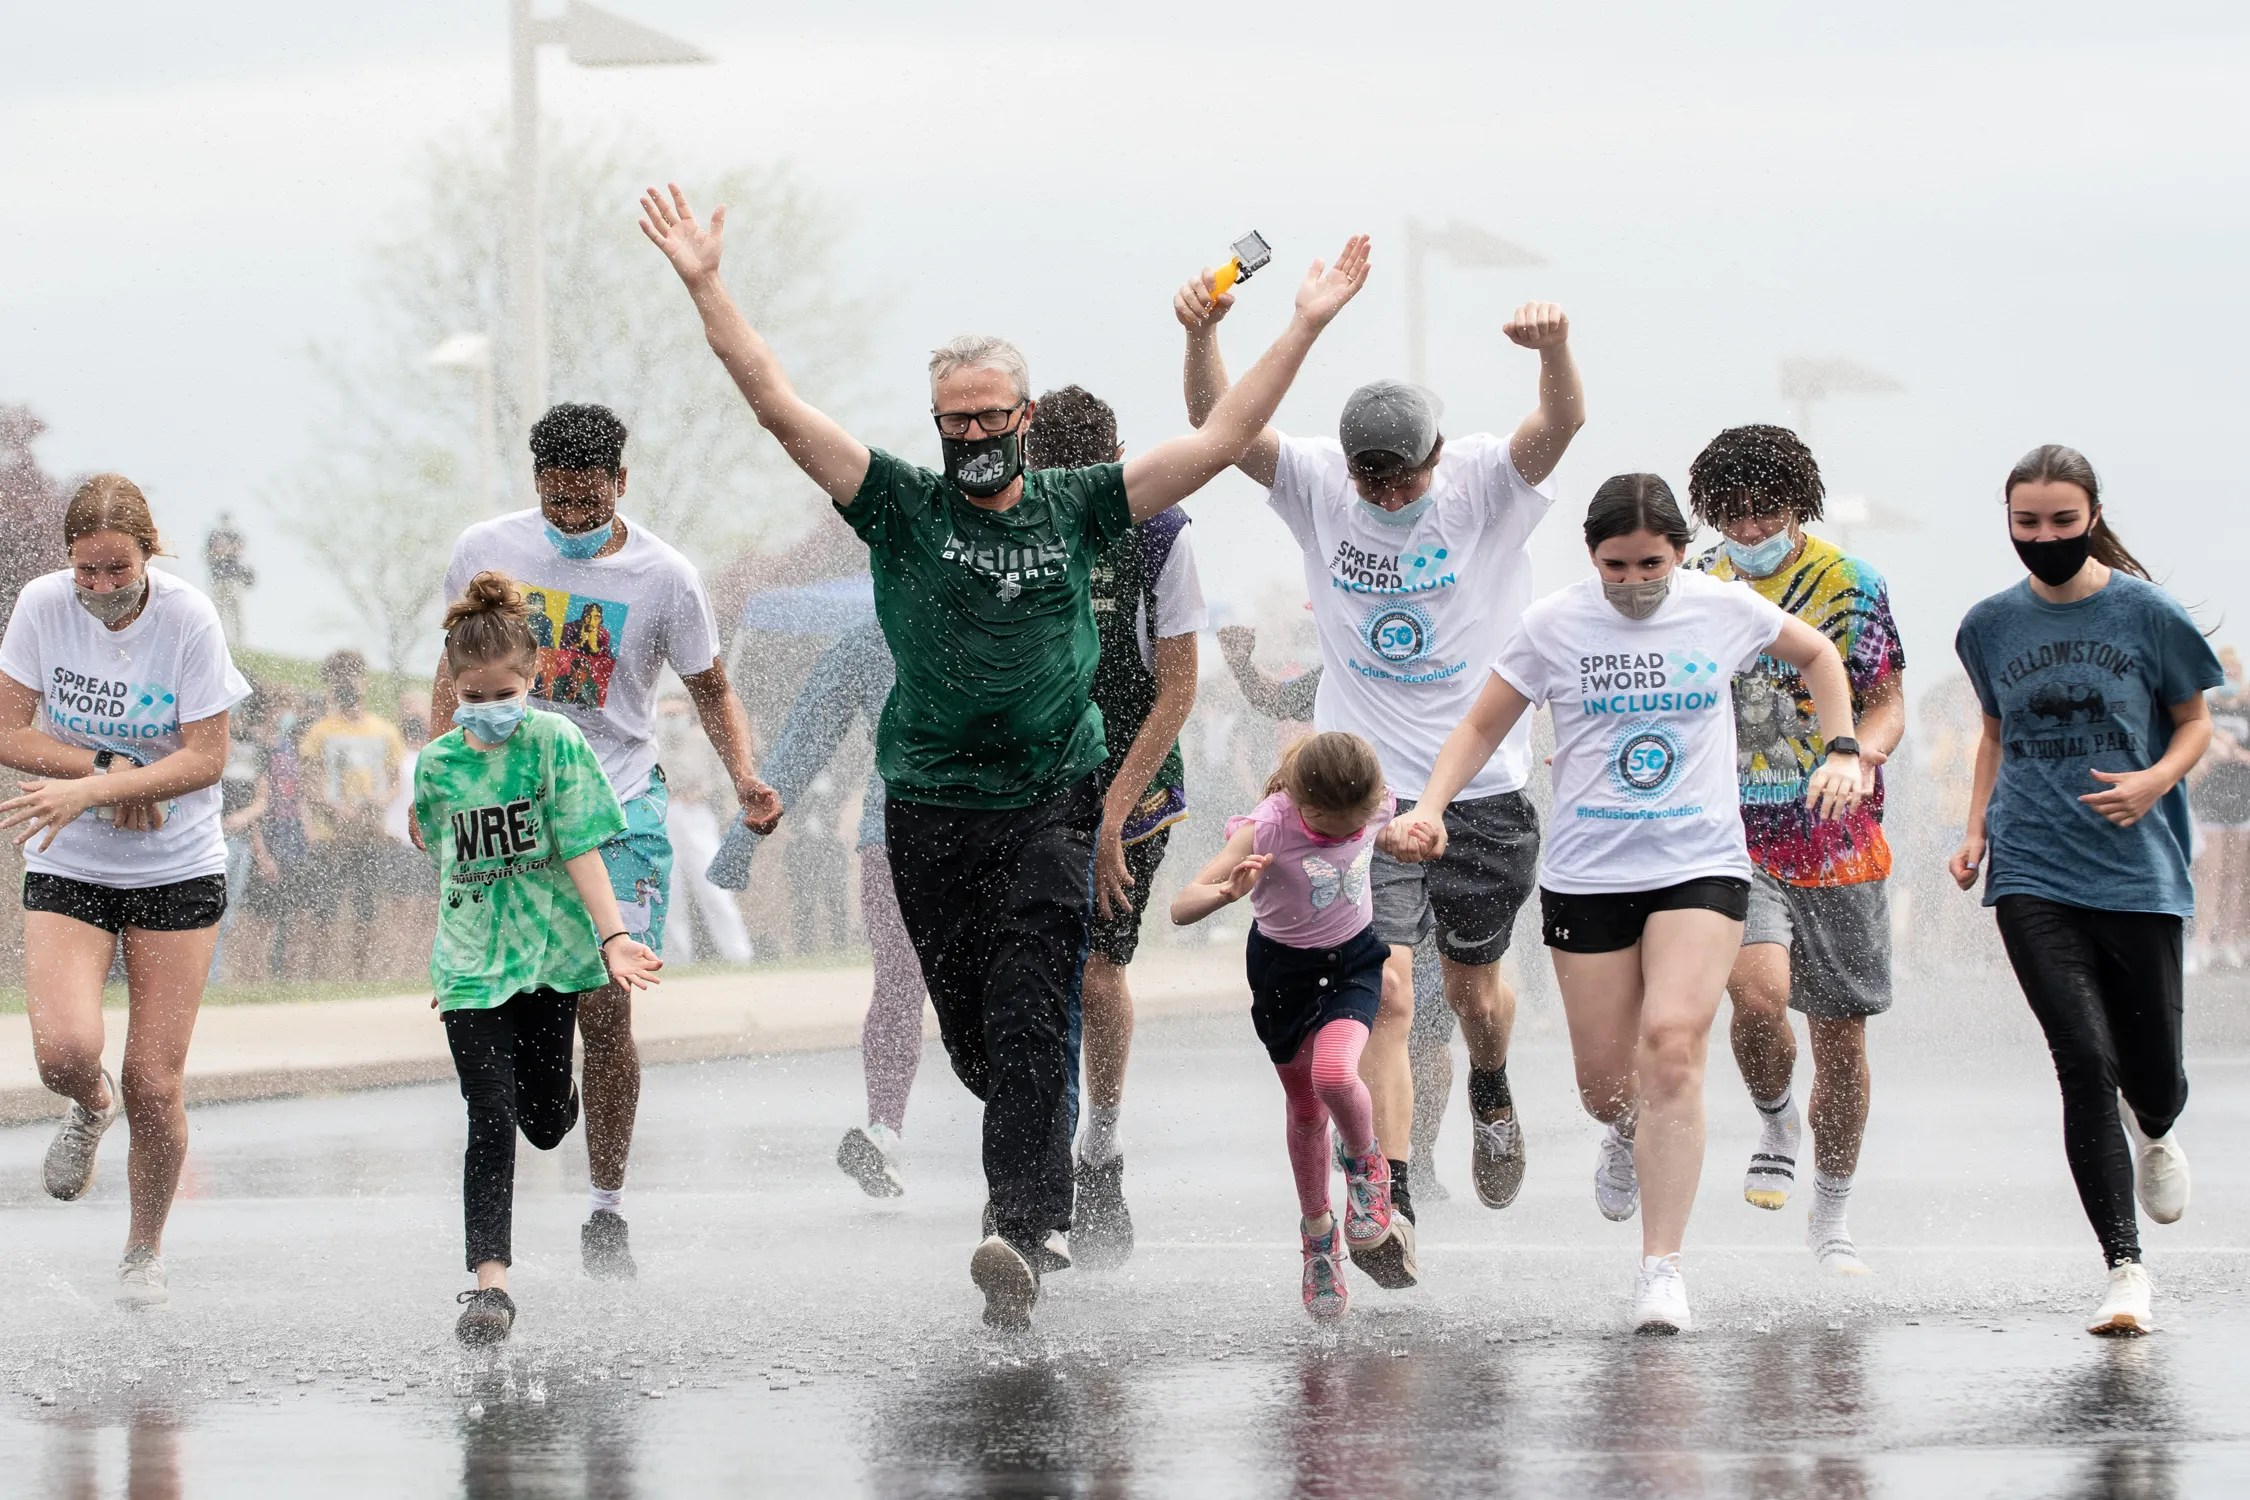 Dr. David Bolton, Pennridge School District superintendent, kicks off the April Showers event, a fundraiser supporting Special Olympics athletes and the school's unified sports teams, at Pennridge High School on Thursday, April 29, 2021.